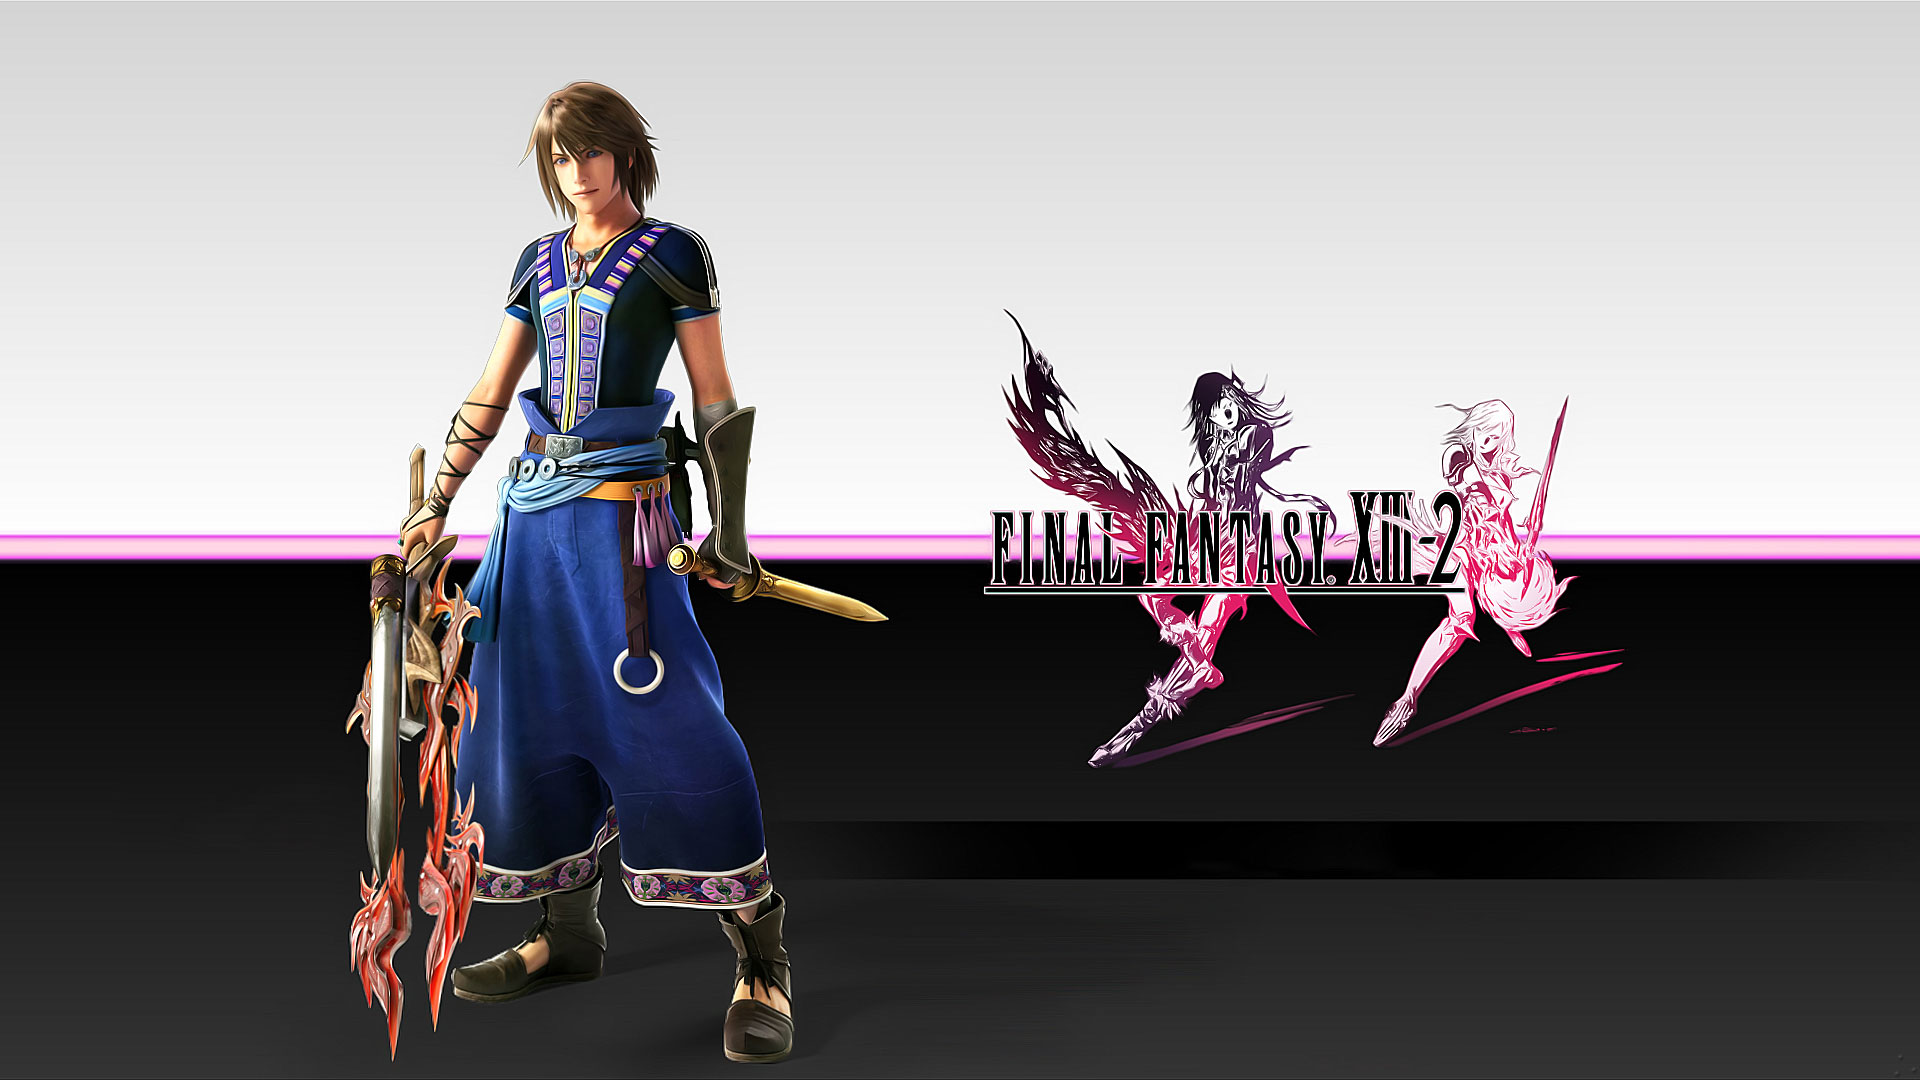 3 Final Fantasy X 13 2 Wallpapers And Themepack For Windows 7